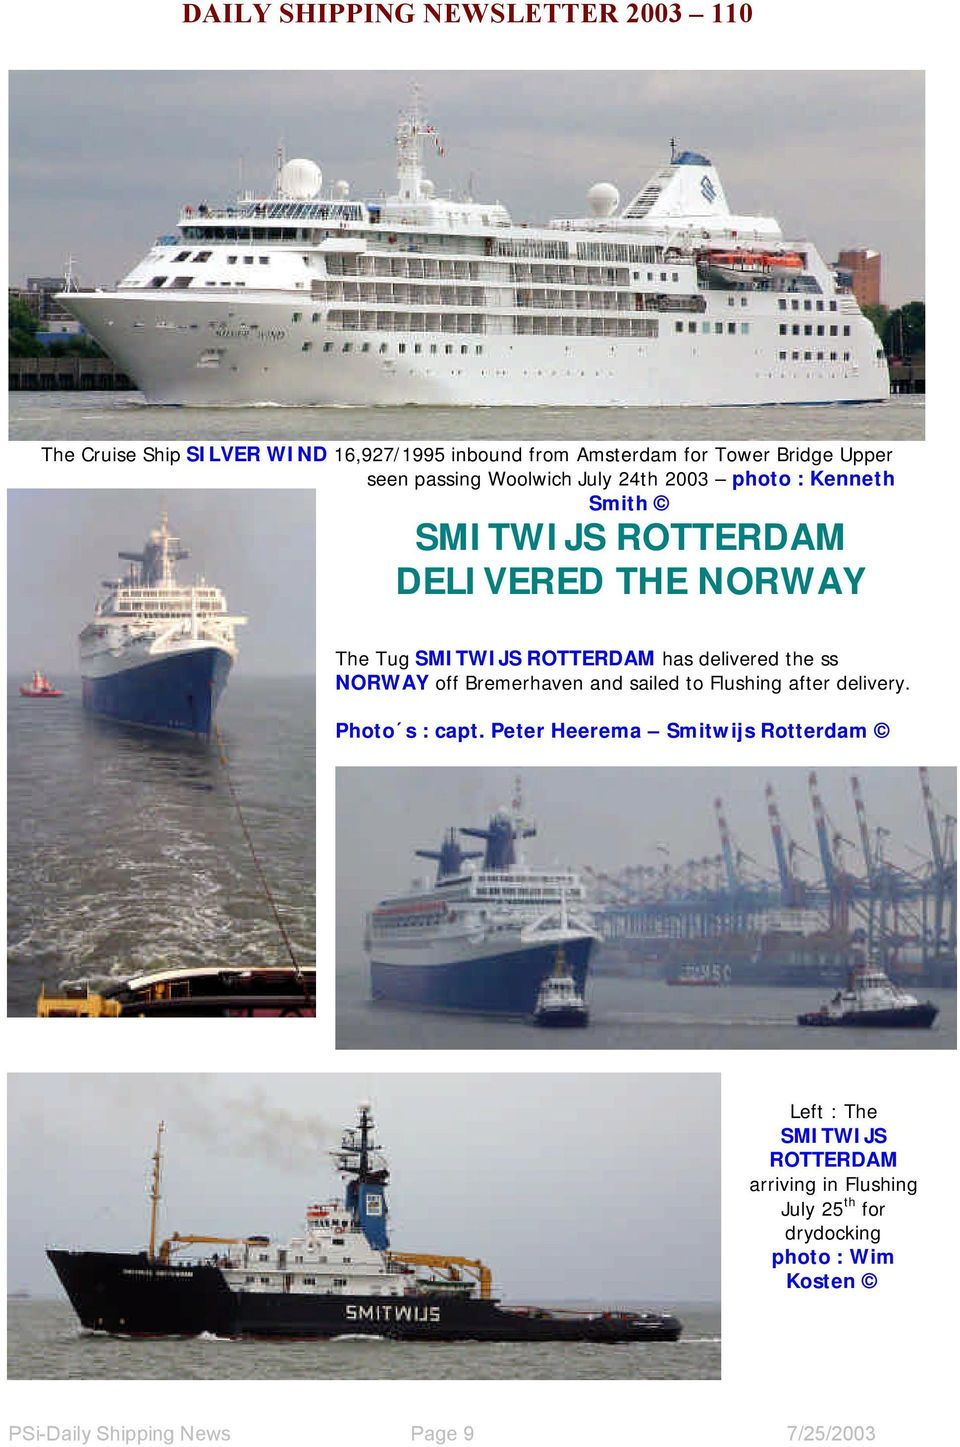 NORWAY off Bremerhaven and sailed to Flushing after delivery. Photo s : capt.